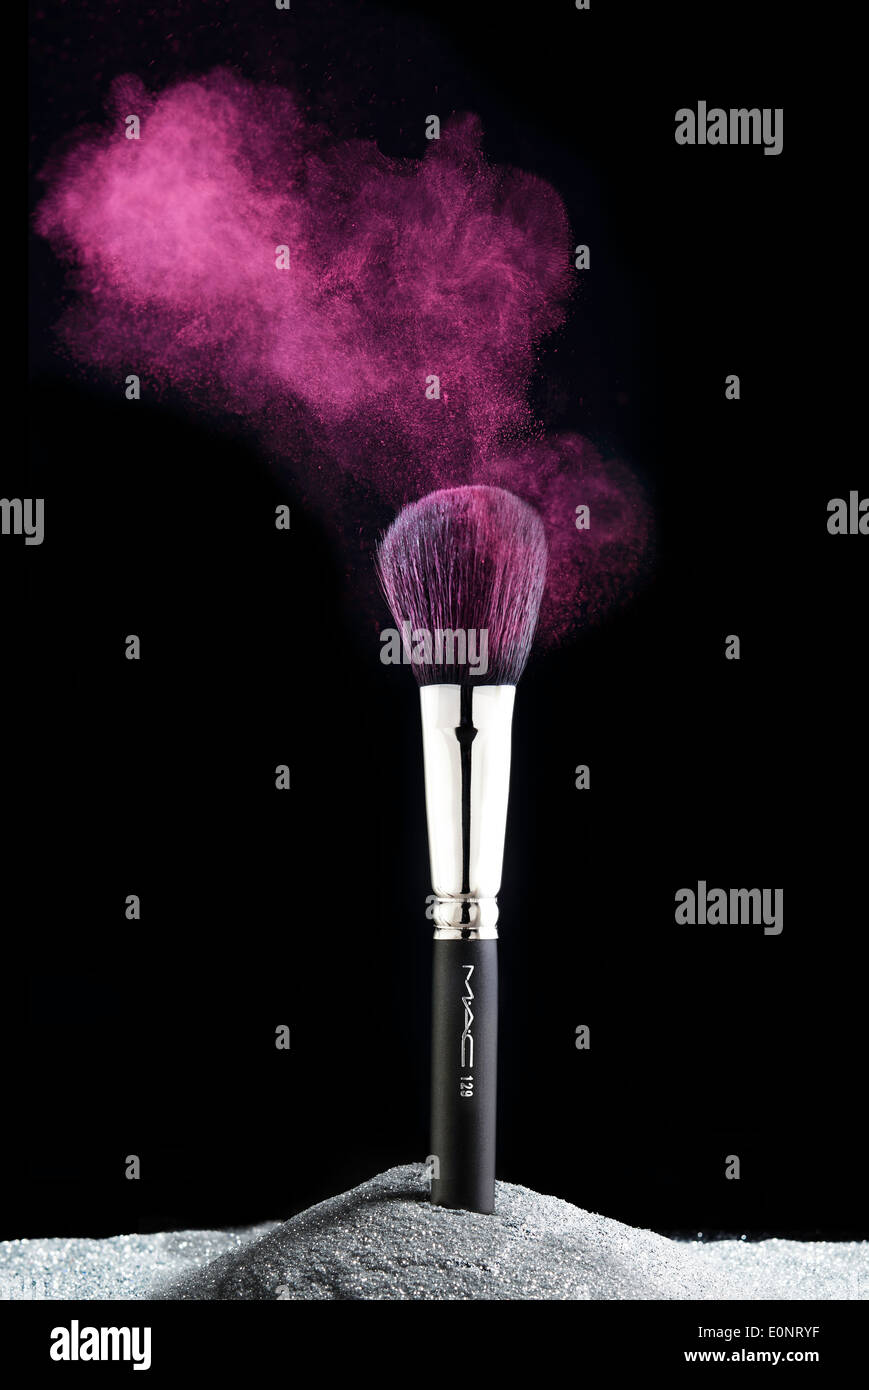 MAC Brush with Purple Powder and glitter Product High Fashion Makeup and Beauty - Stock Image